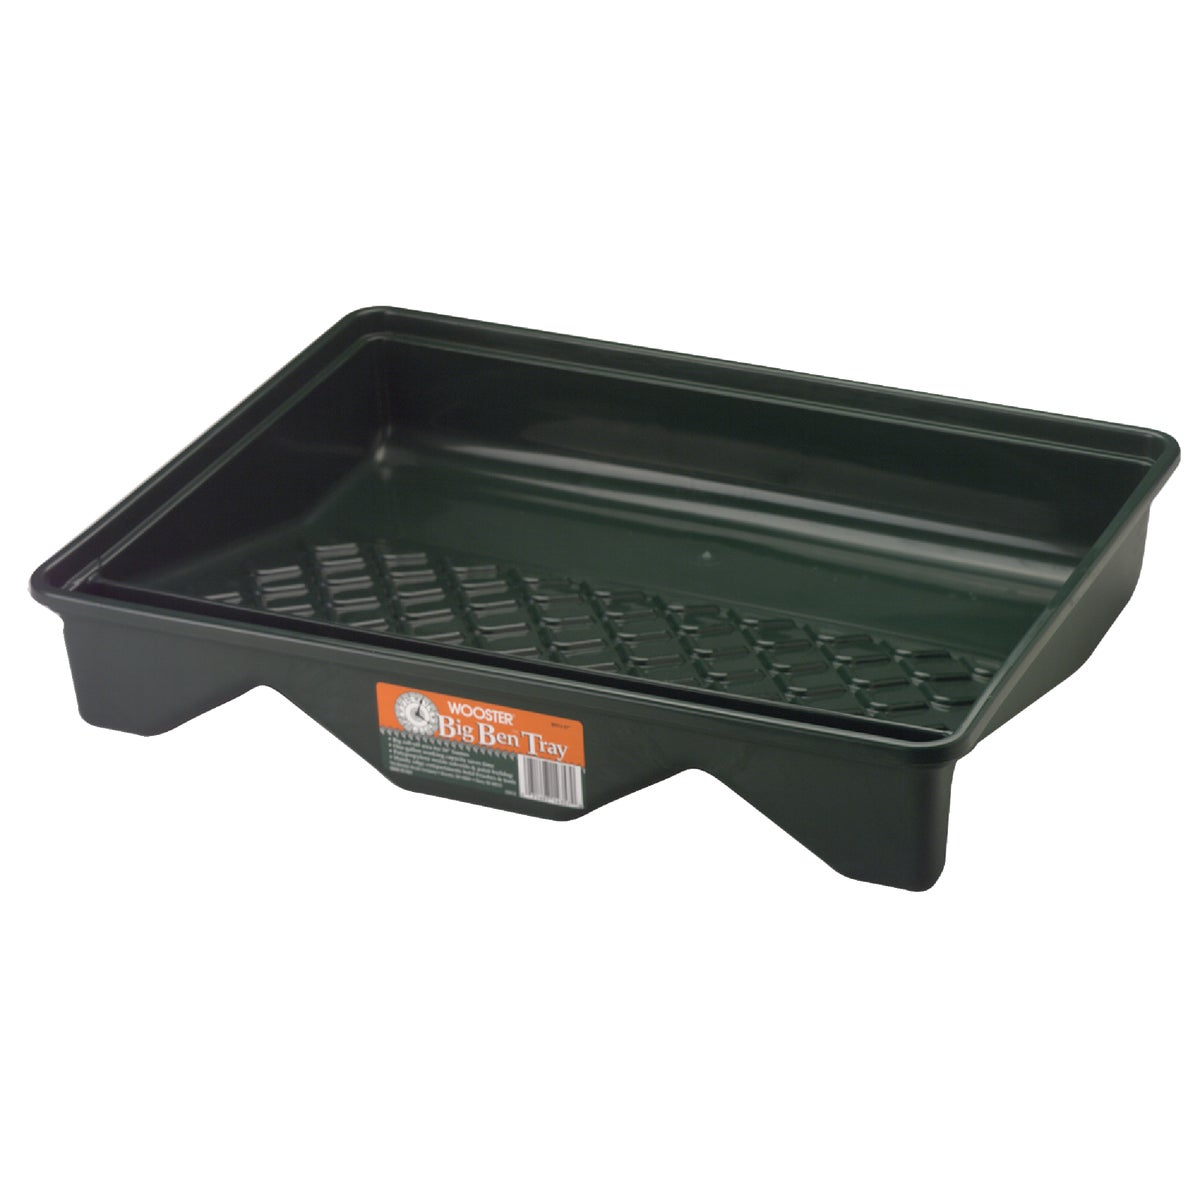 "21"" PAINT TRAY - BR412-21"" by Wooster Brush Co"